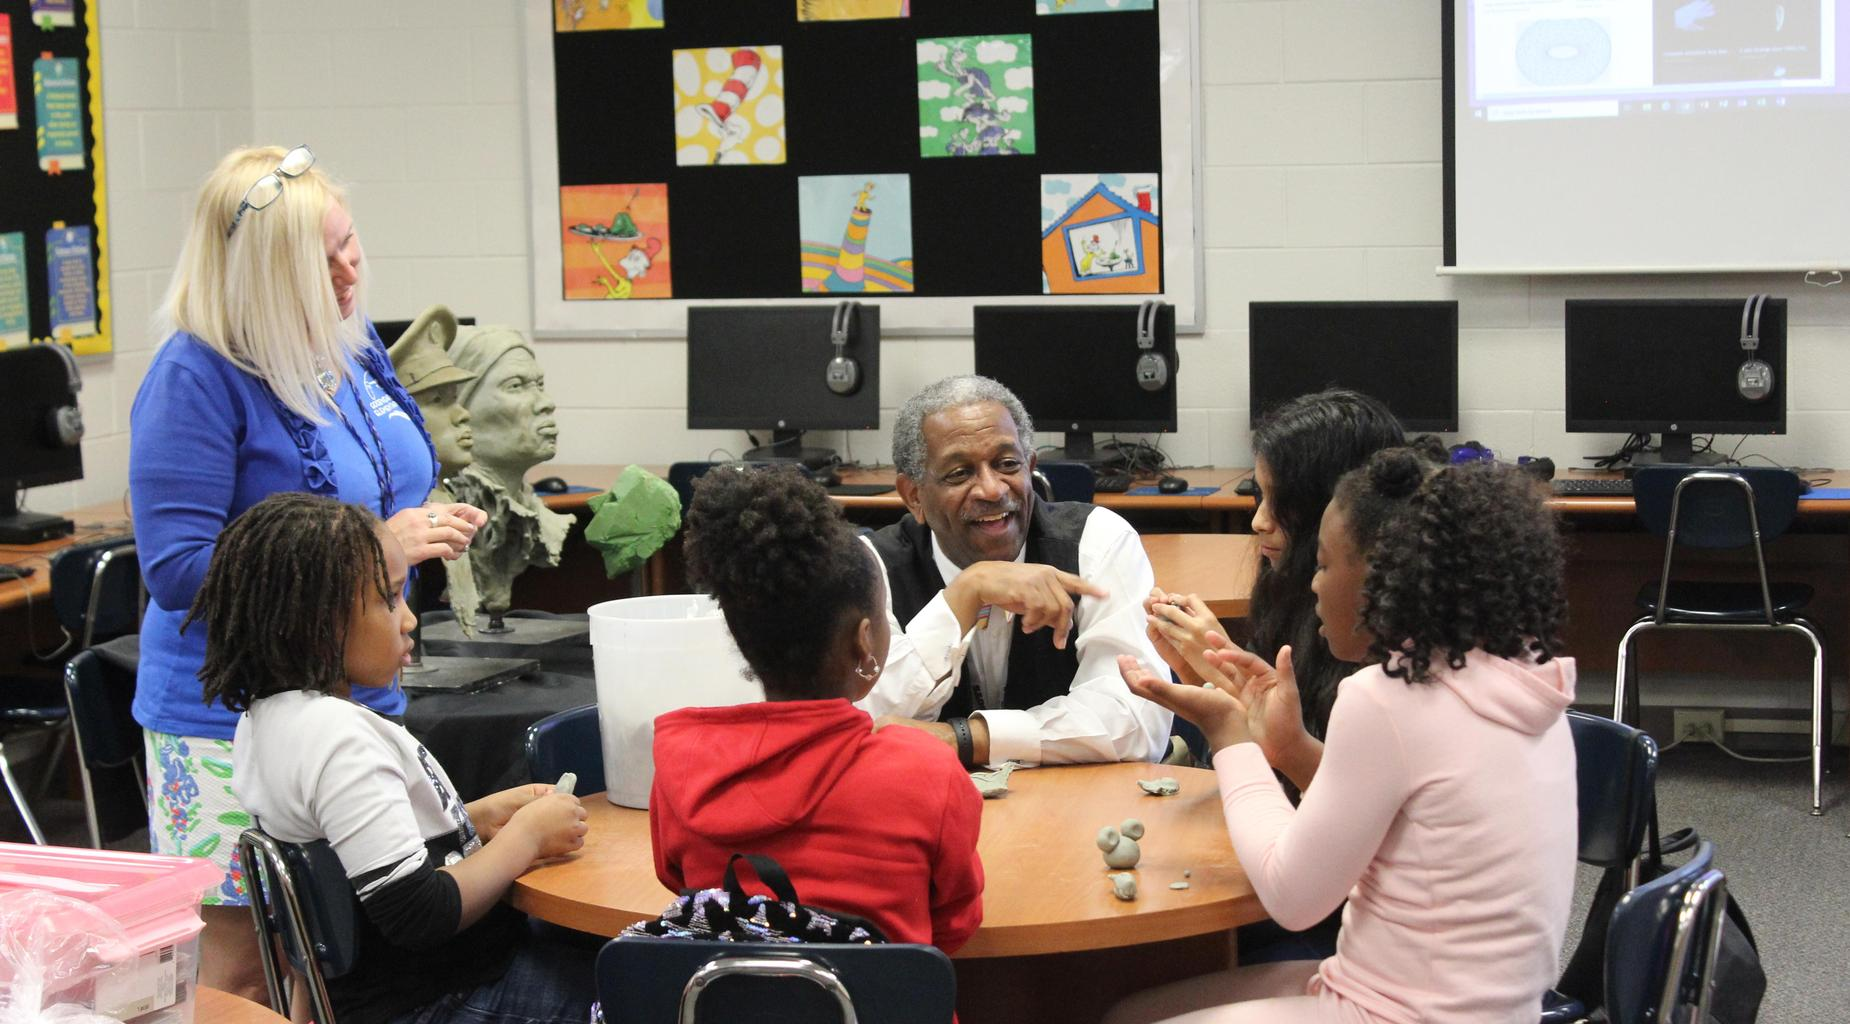 Kevin Pullen teaches students a sculpting lesson.